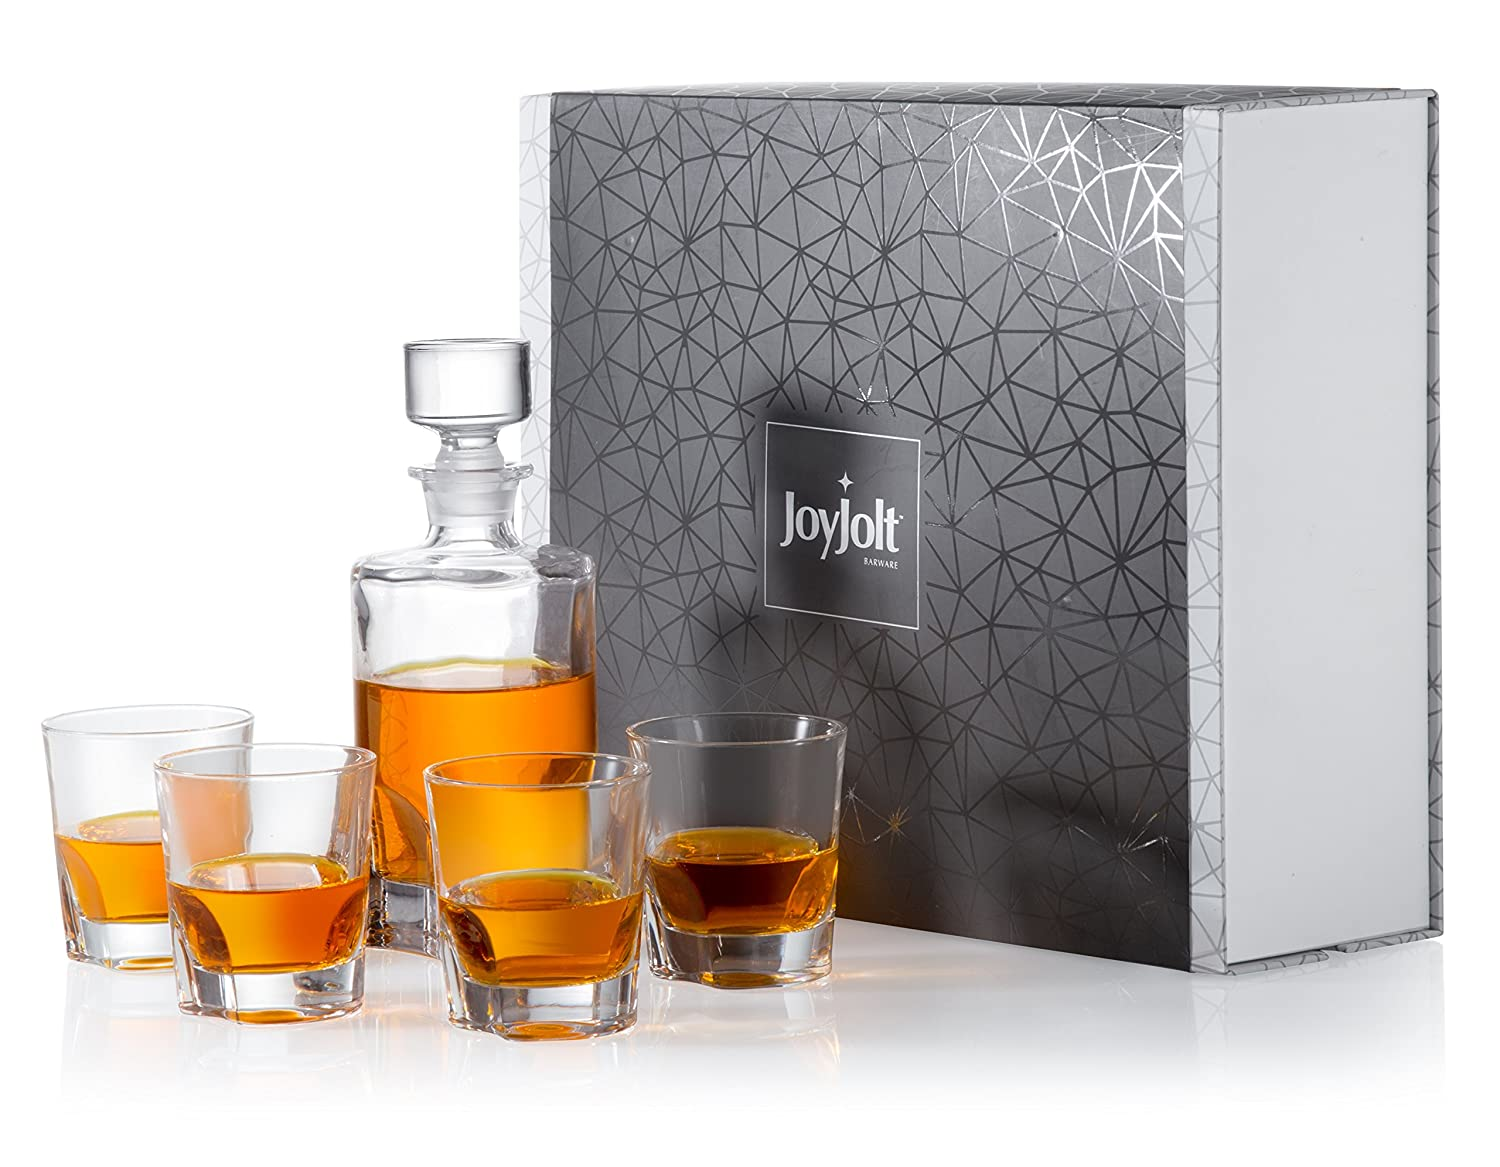 JoyJolt Carina 5 Piece Whiskey Decanter And Glass Set, 100% Lead-Free Crystal Bar Set Prefer For Scotch, Liquor, Bourbon Comes with A Whisky Decanter Sets And 4 Old Fashioned Glasses. JC102109